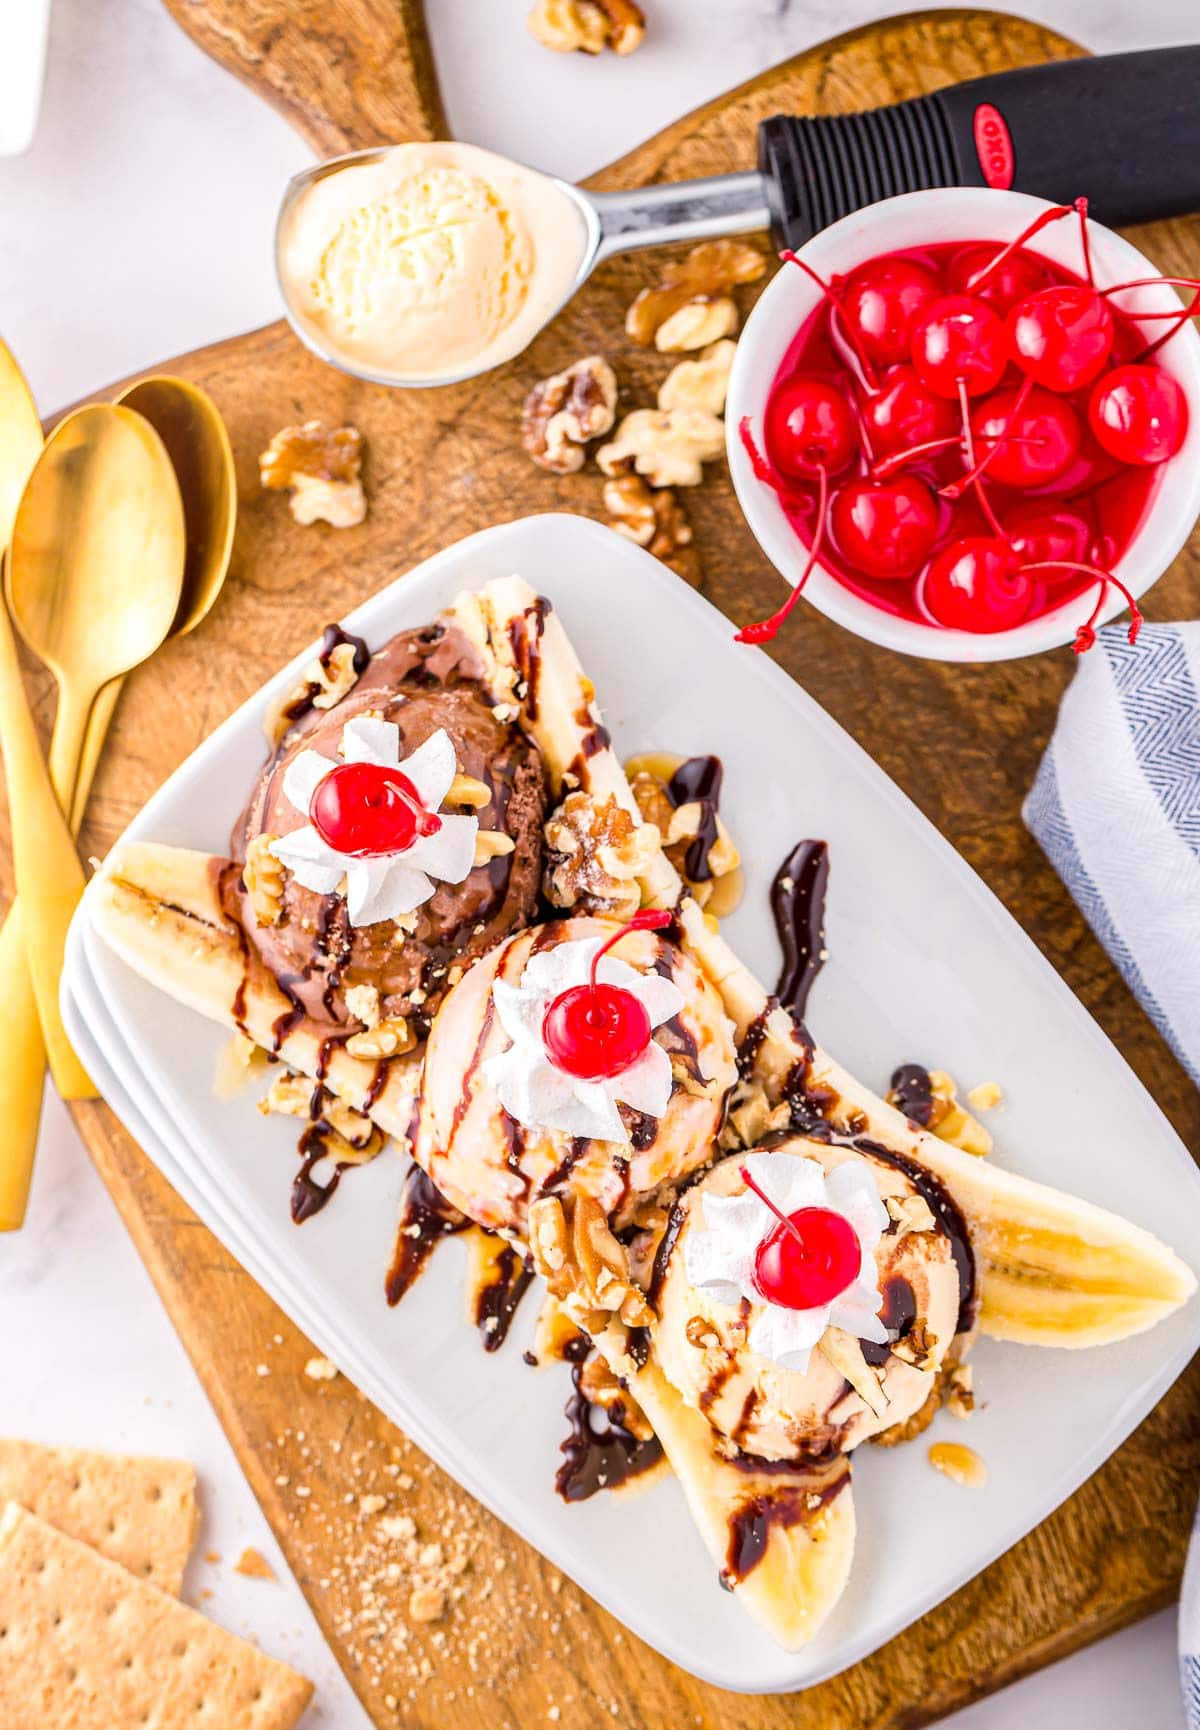 top down look at a classic banana split made with three different flavors of ice cream, whipped cream, and cherries. Plate is sitting on wood board next to a small bowl of maraschino cherries.